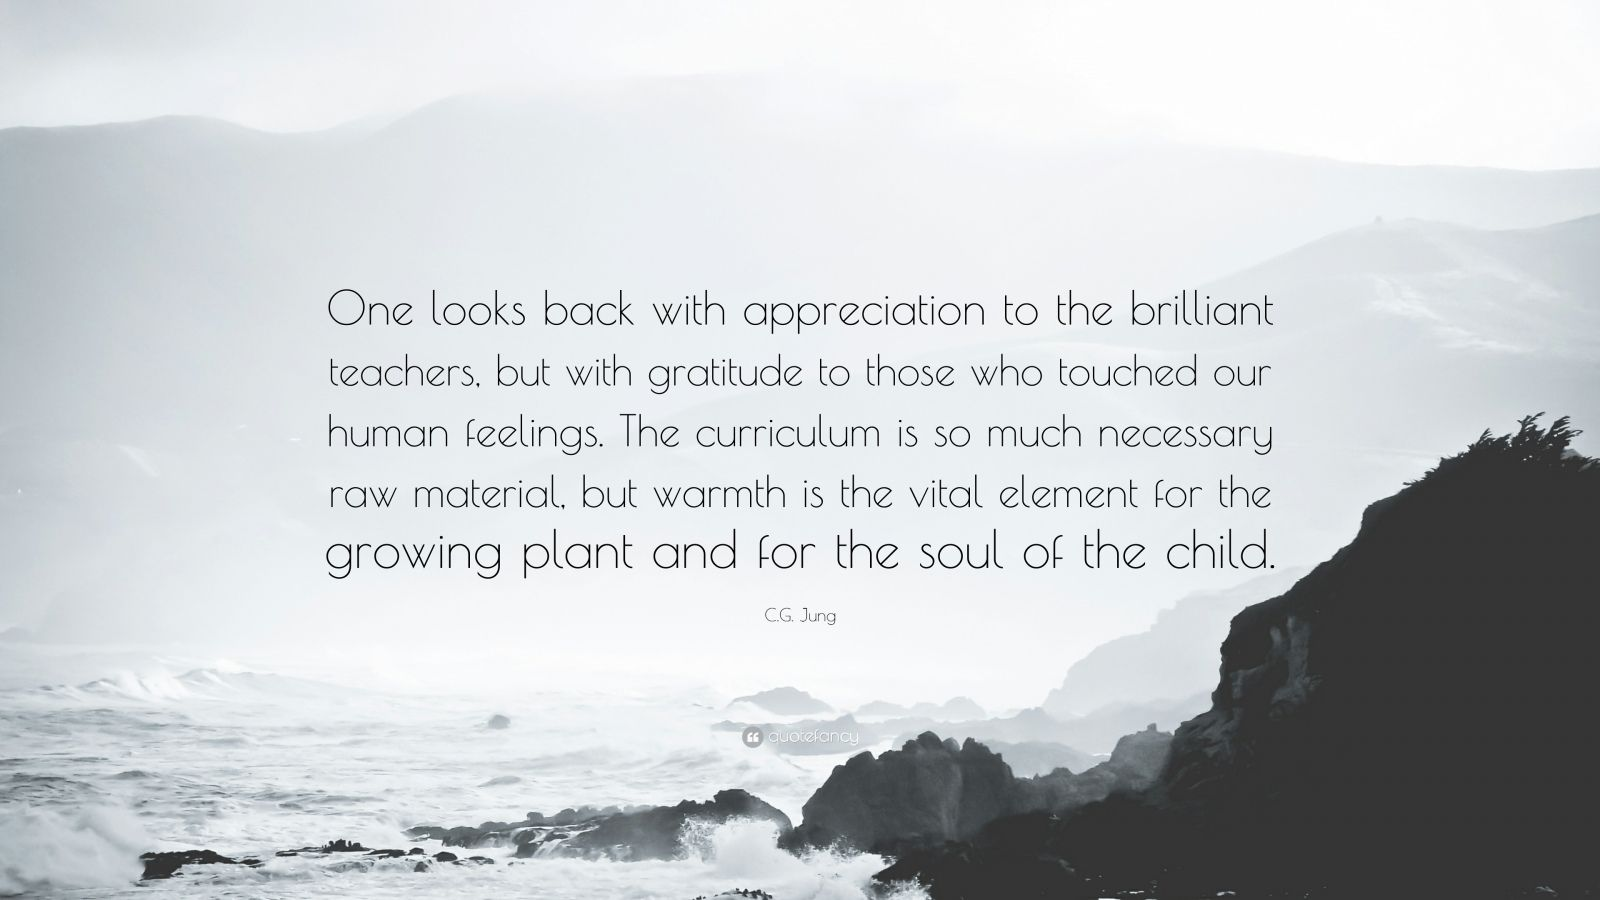 "C.G. Jung Quote: ""One looks back with appreciation to the brilliant teachers, but with gratitude to those who touched our human feelings. The curriculum is so much necessary raw material, but warmth is the vital element for the growing plant and for the soul of the child."""